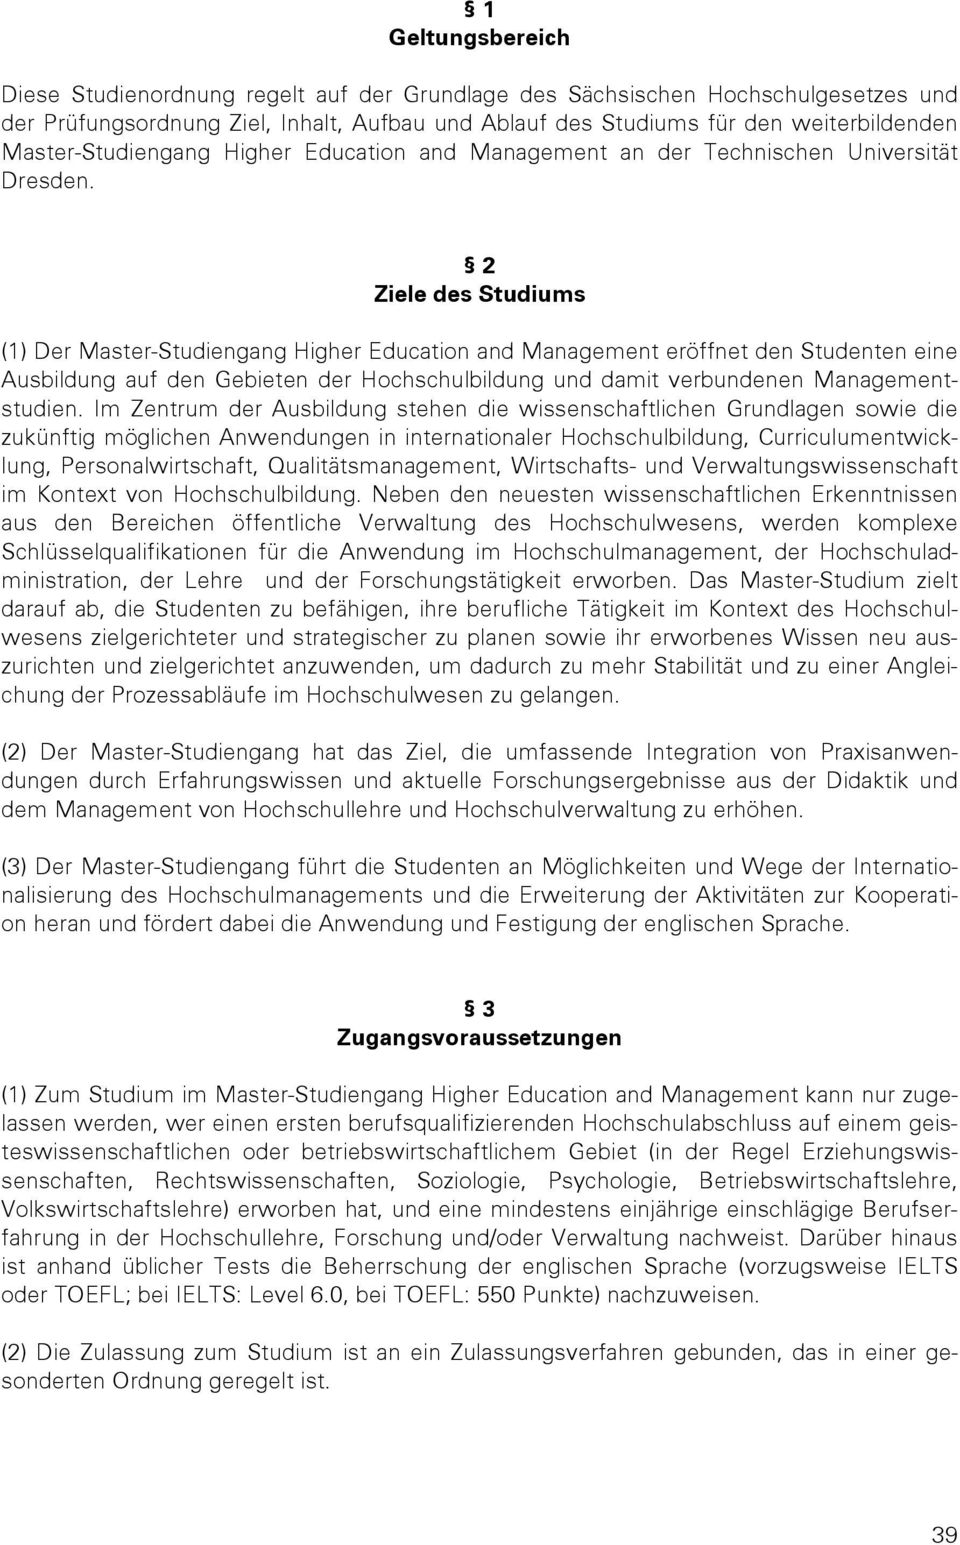 2 Ziele des Studiums (1) Der Master-Studiengang Higher Education and Management eröffnet den Studenten eine Ausbildung auf den Gebieten der Hochschulbildung und damit verbundenen Managementstudien.